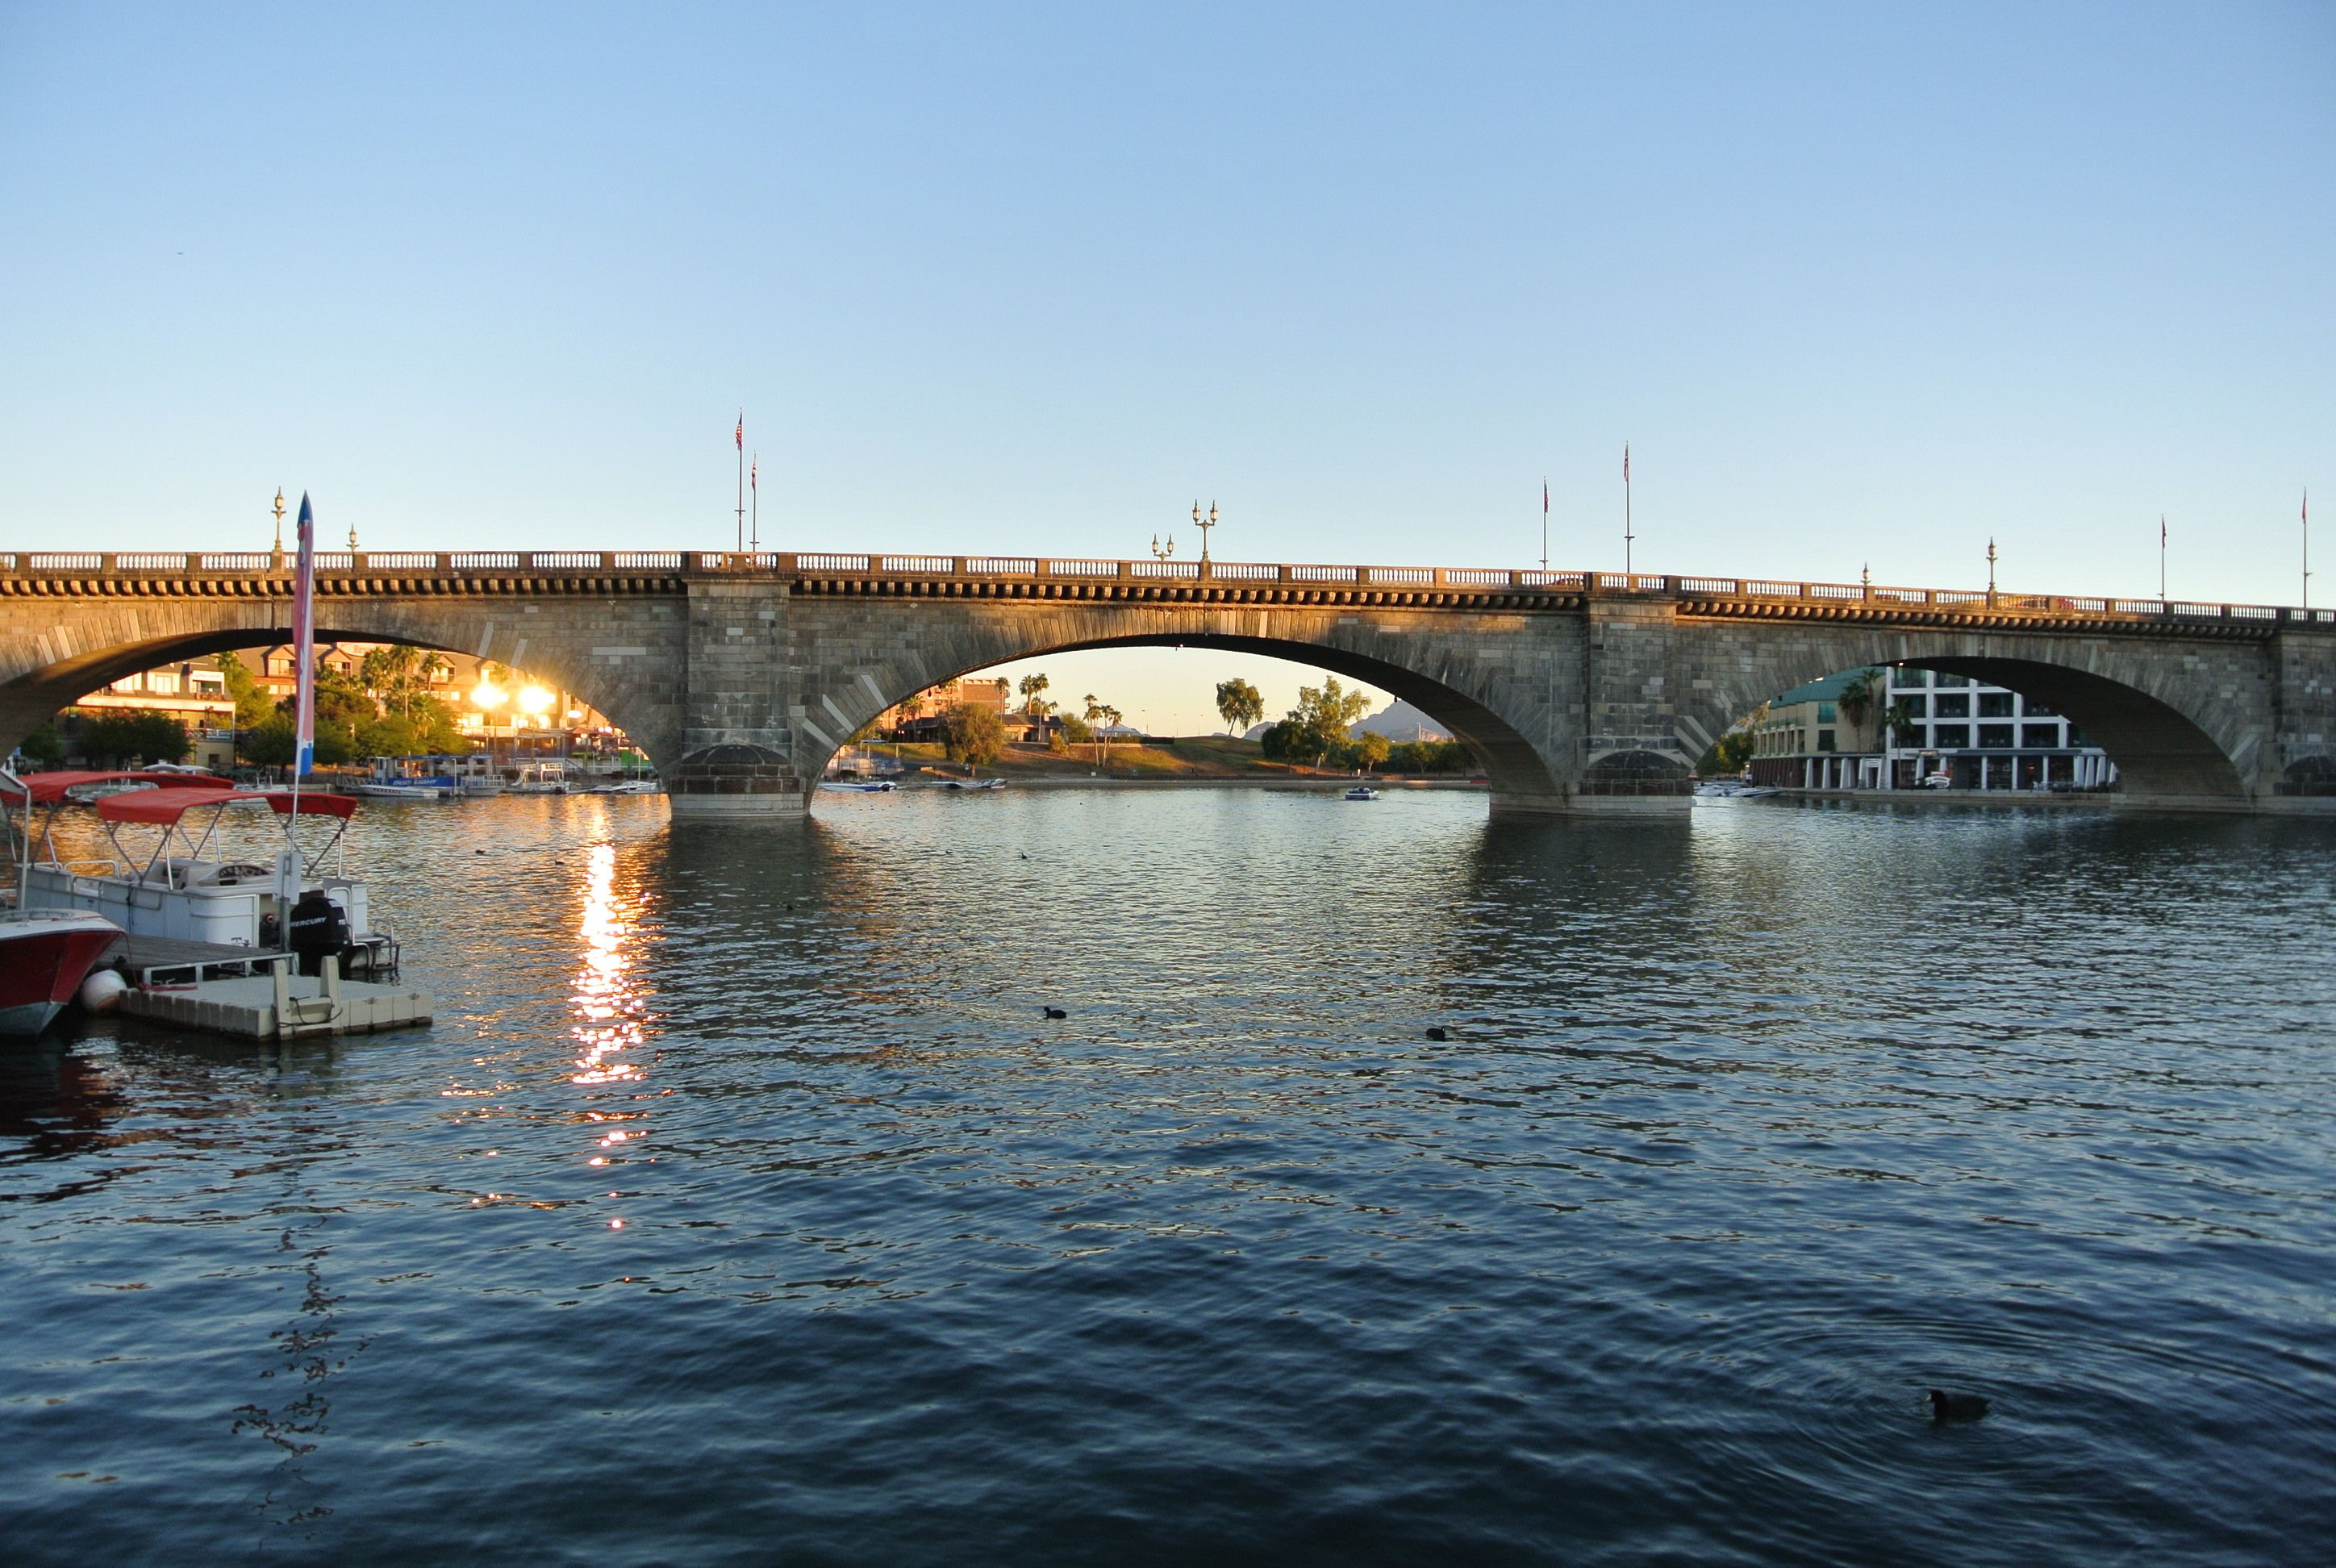 Visit To London Bridge Now In California Bought And Transported To The Us And Re Built Brick By Brick The Bridge Still Has London Bridge London California